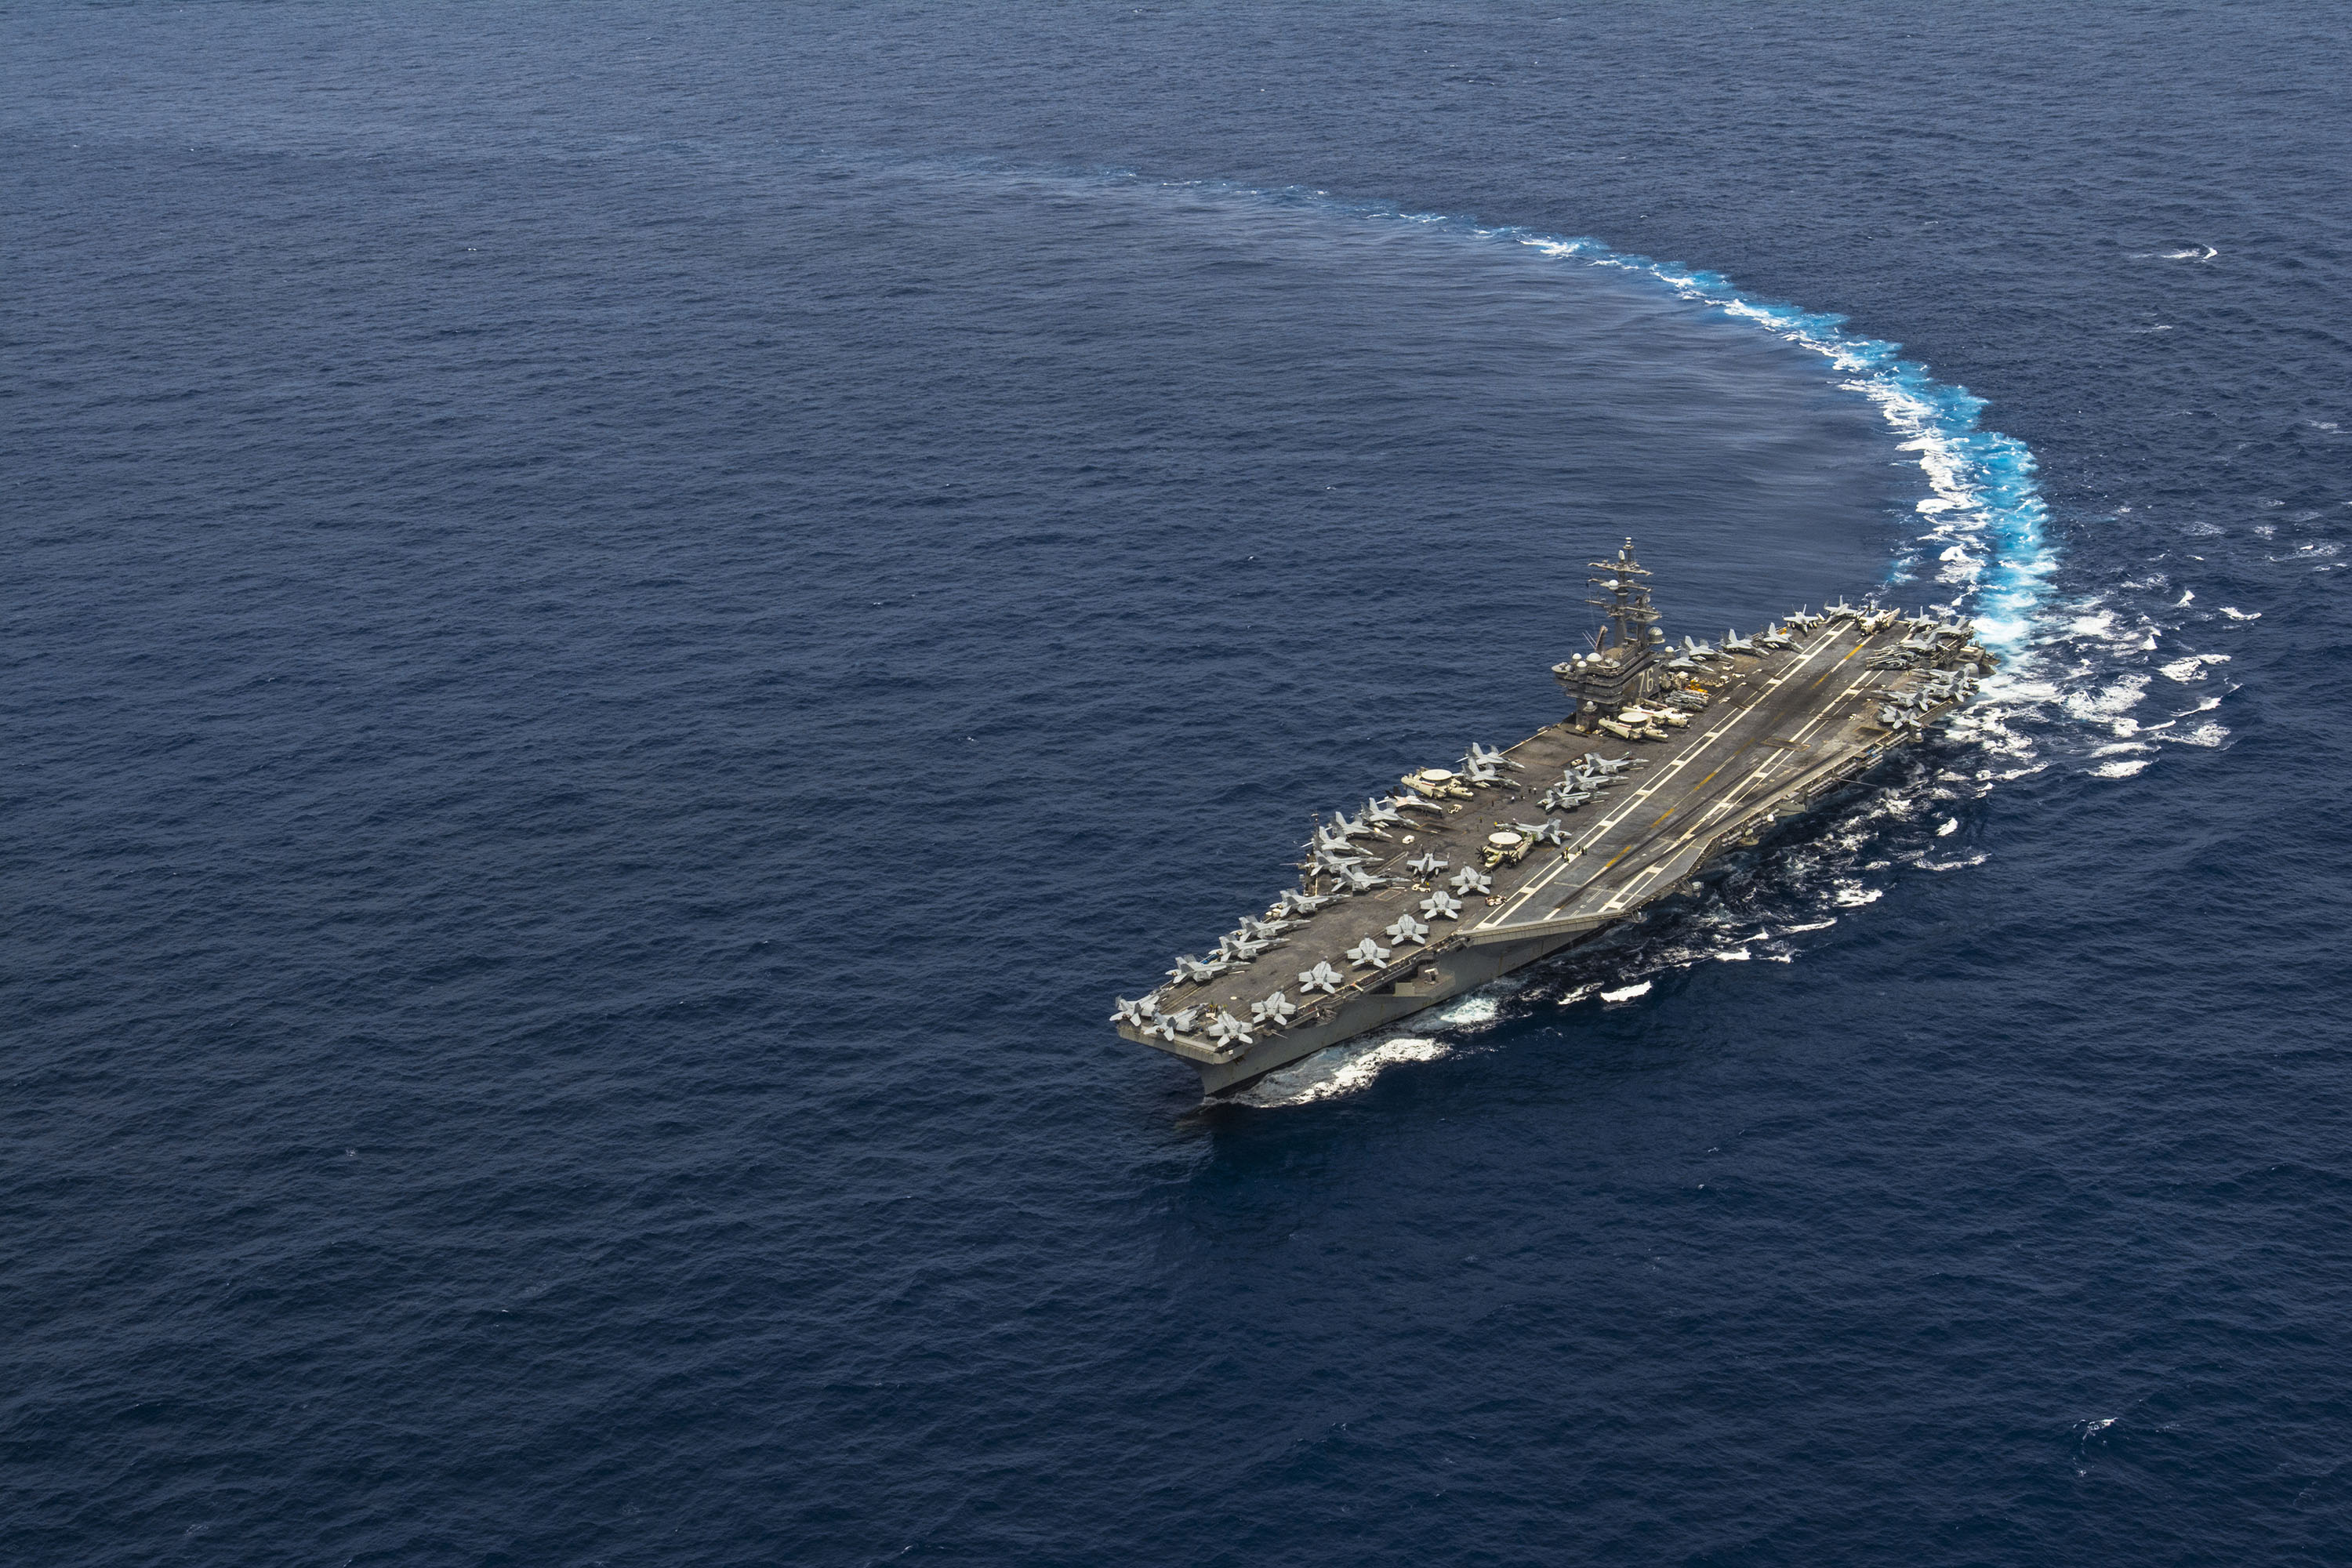 USS Ronald Reagan (CVN-76) transits the Pacific Ocean toward the U.S. 7th Fleet area of responsibility to serve as the Navy's only forward-deployed aircraft carrier on Sept. 19, 2015. US Navy Photo